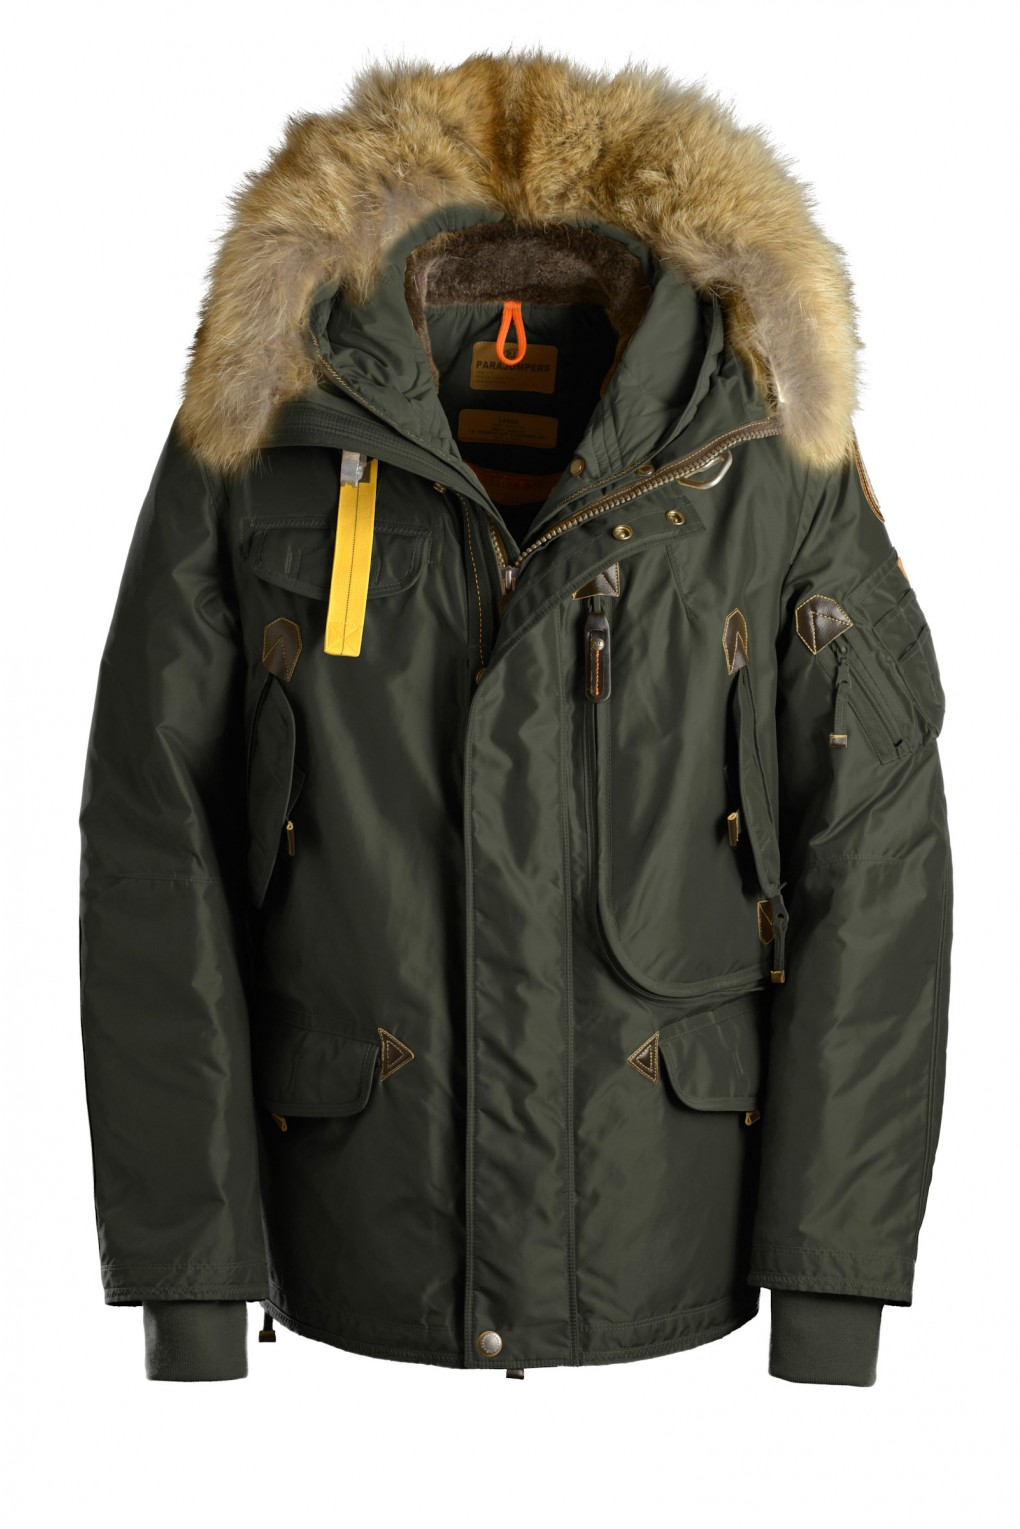 parajumpers RIGHT HAND man outerwear Olive